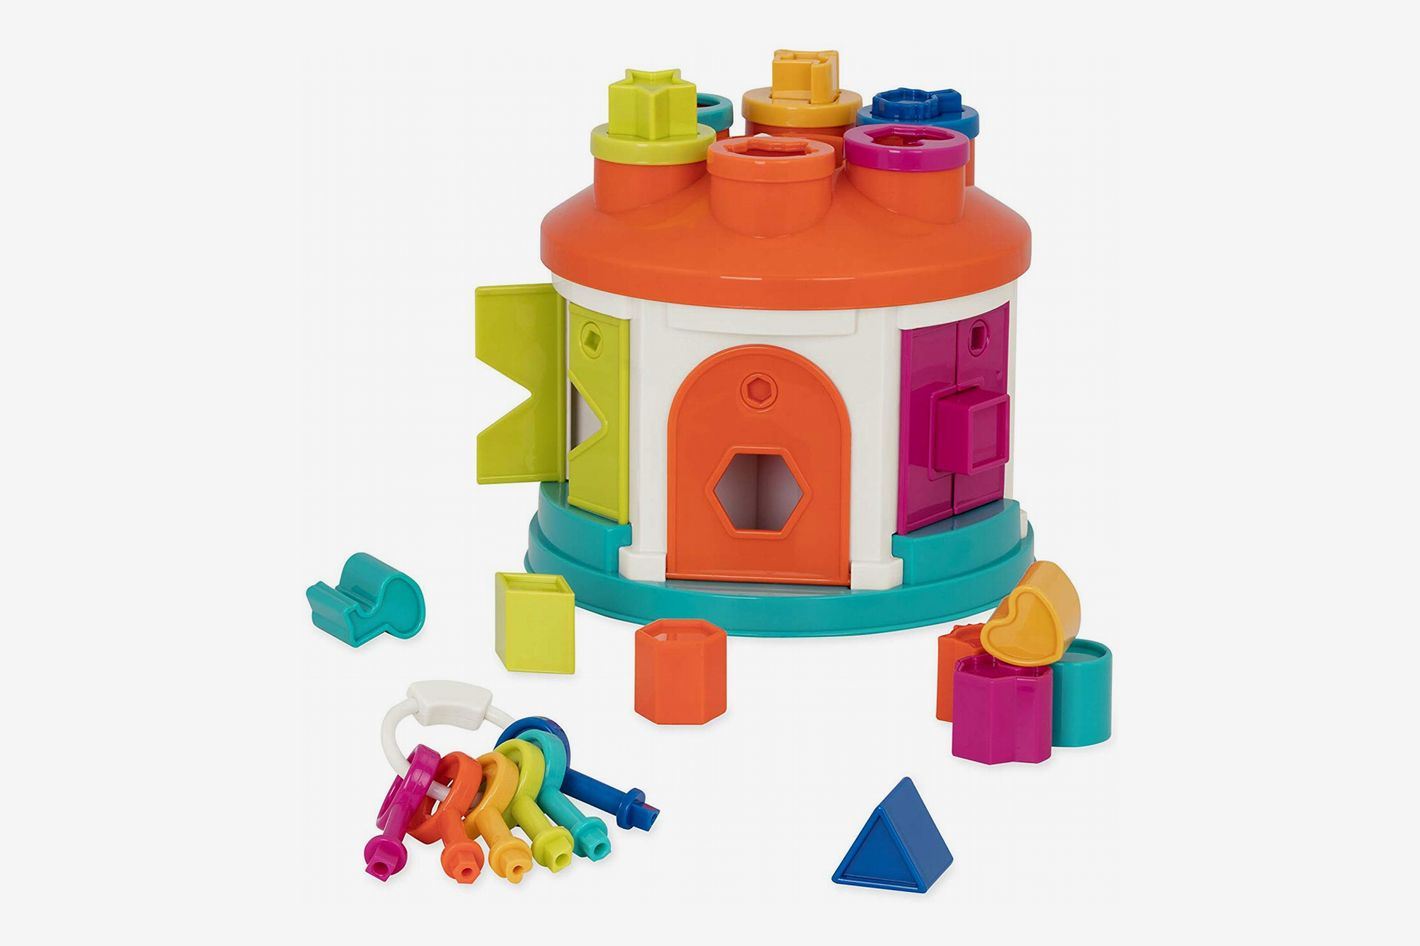 22 Best Toys And Gifts For 2 Year Olds 2019